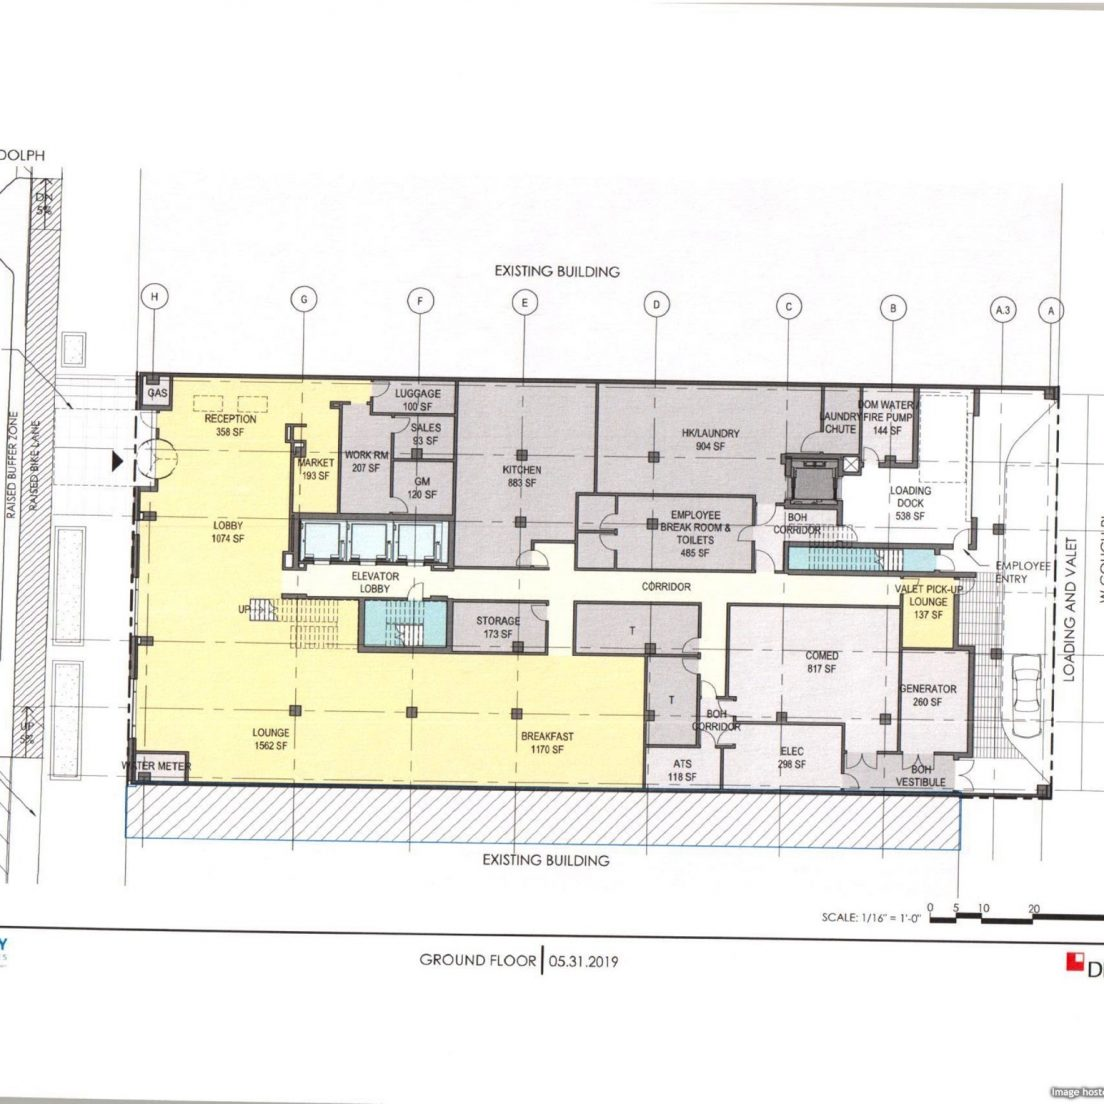 May 2019 diagram of 180 West Randolph